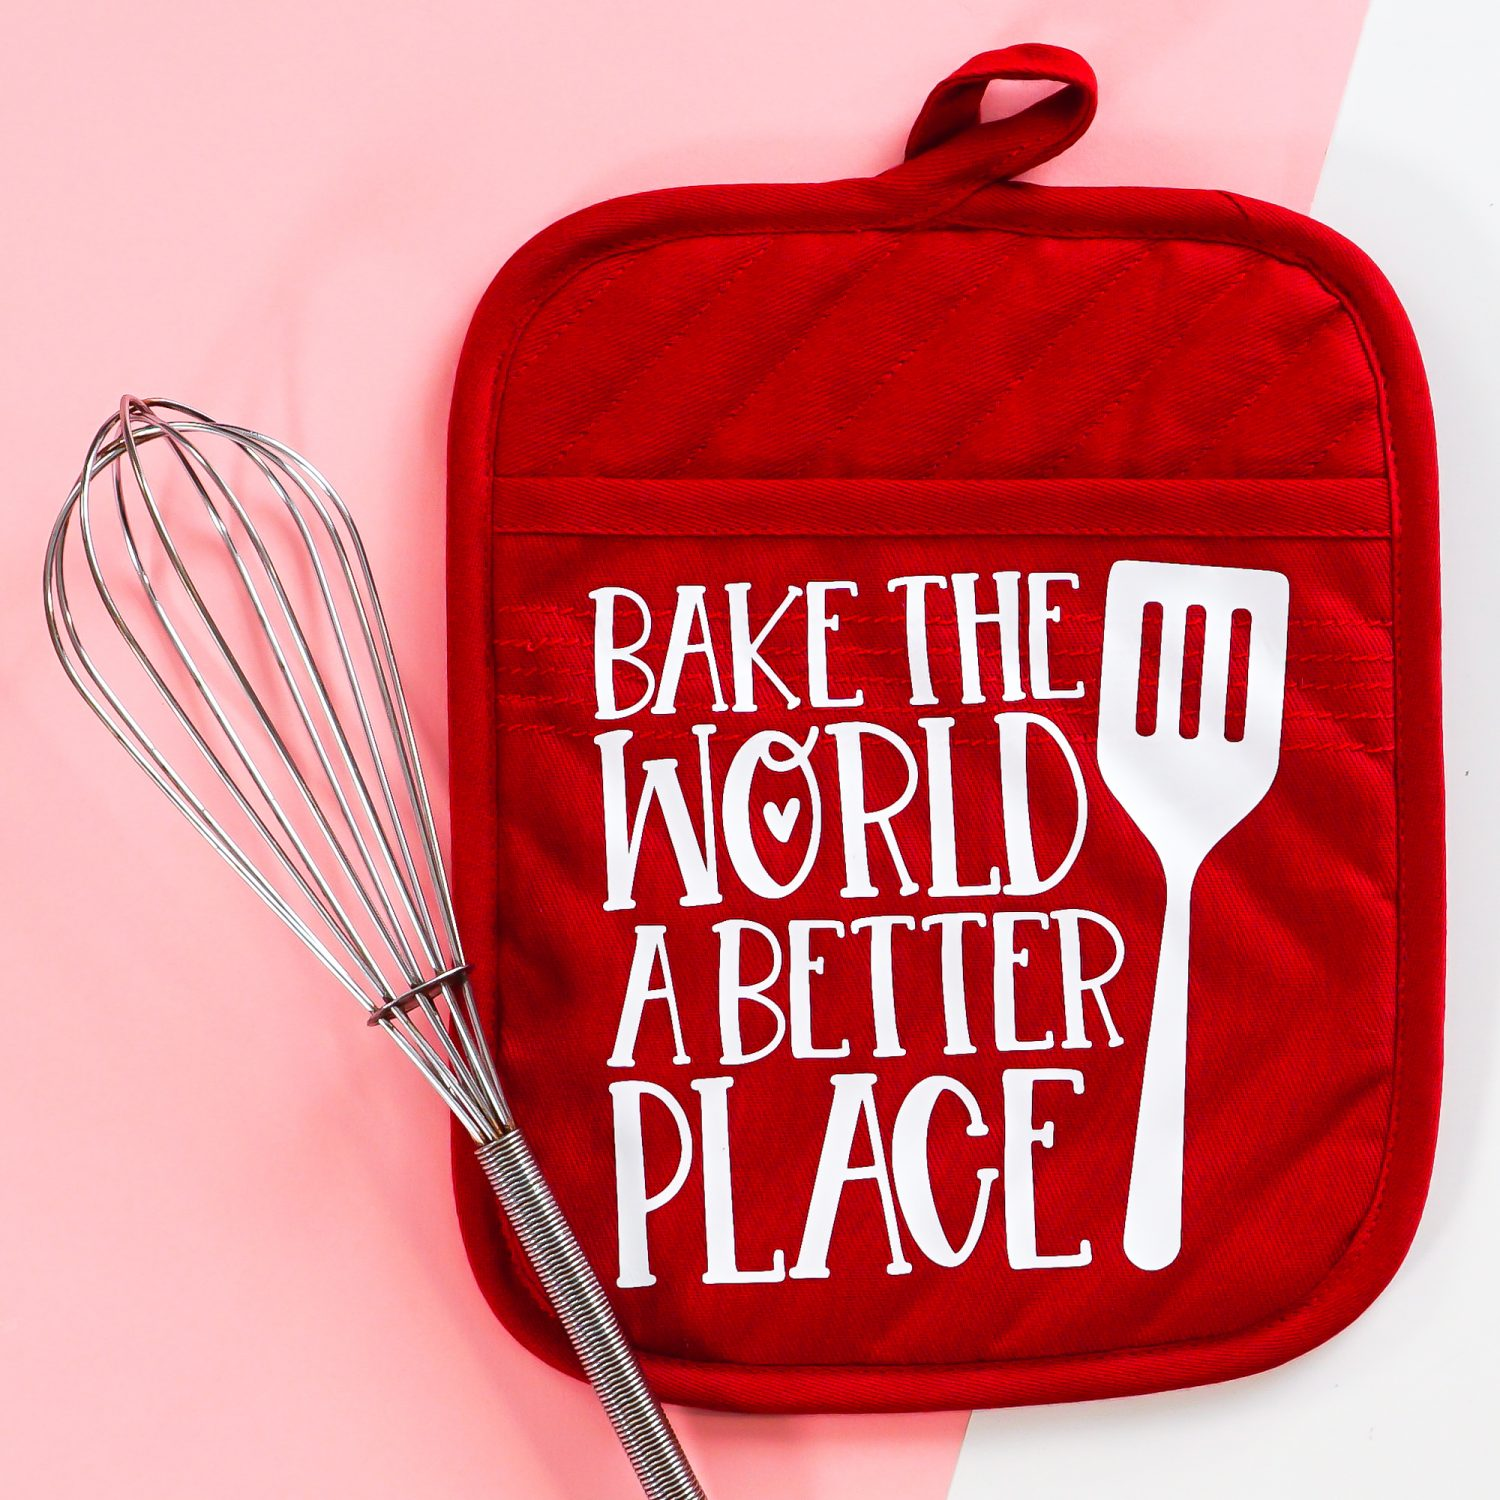 Finished customized pot holder on a pink and white background with a whisk.